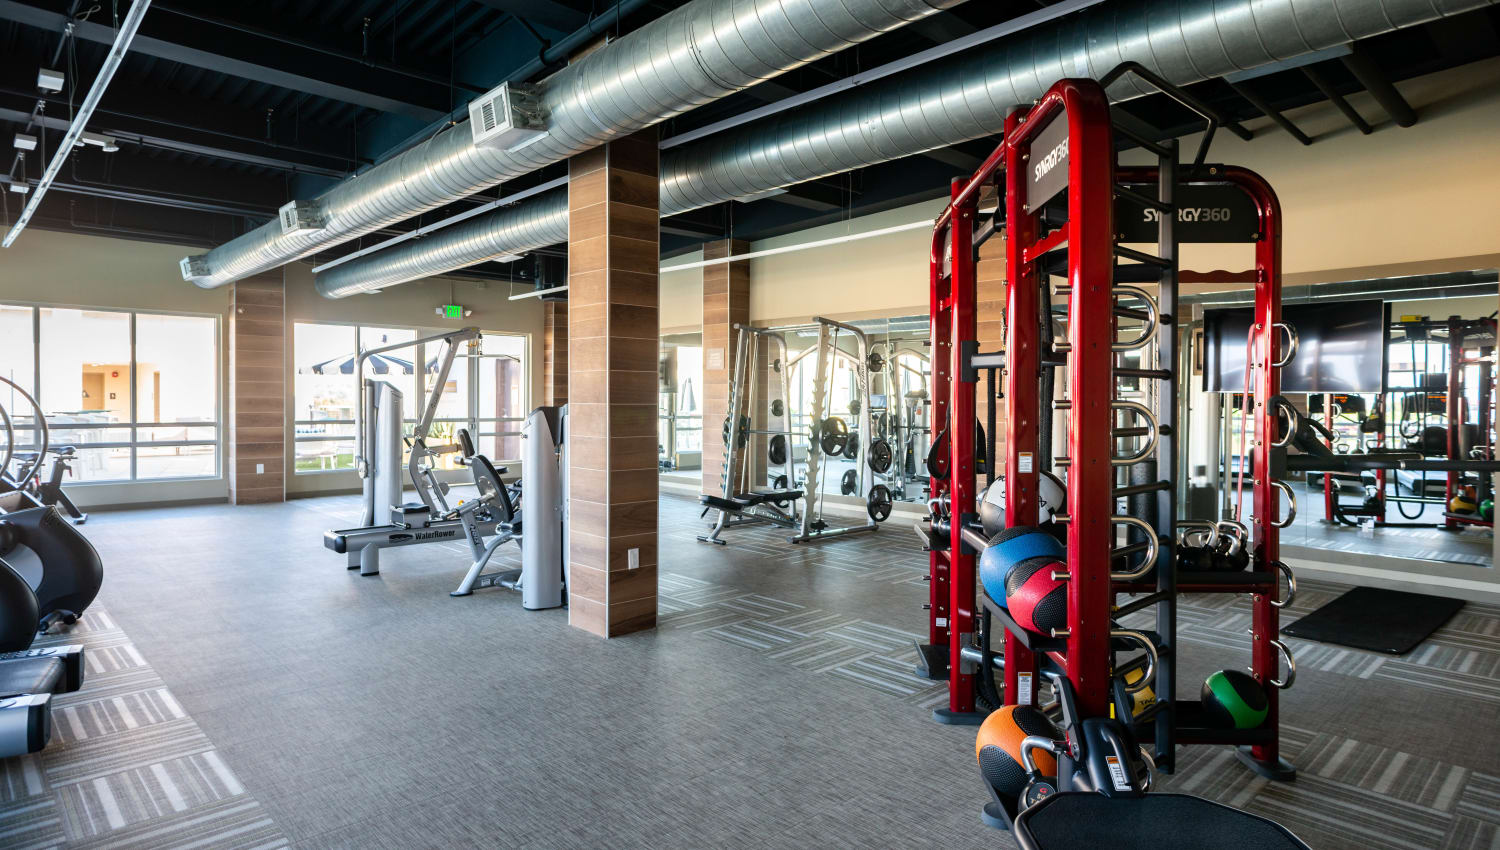 Spacious and very well-equipped onsite fitness center at Fusion Apartments in Irvine, California